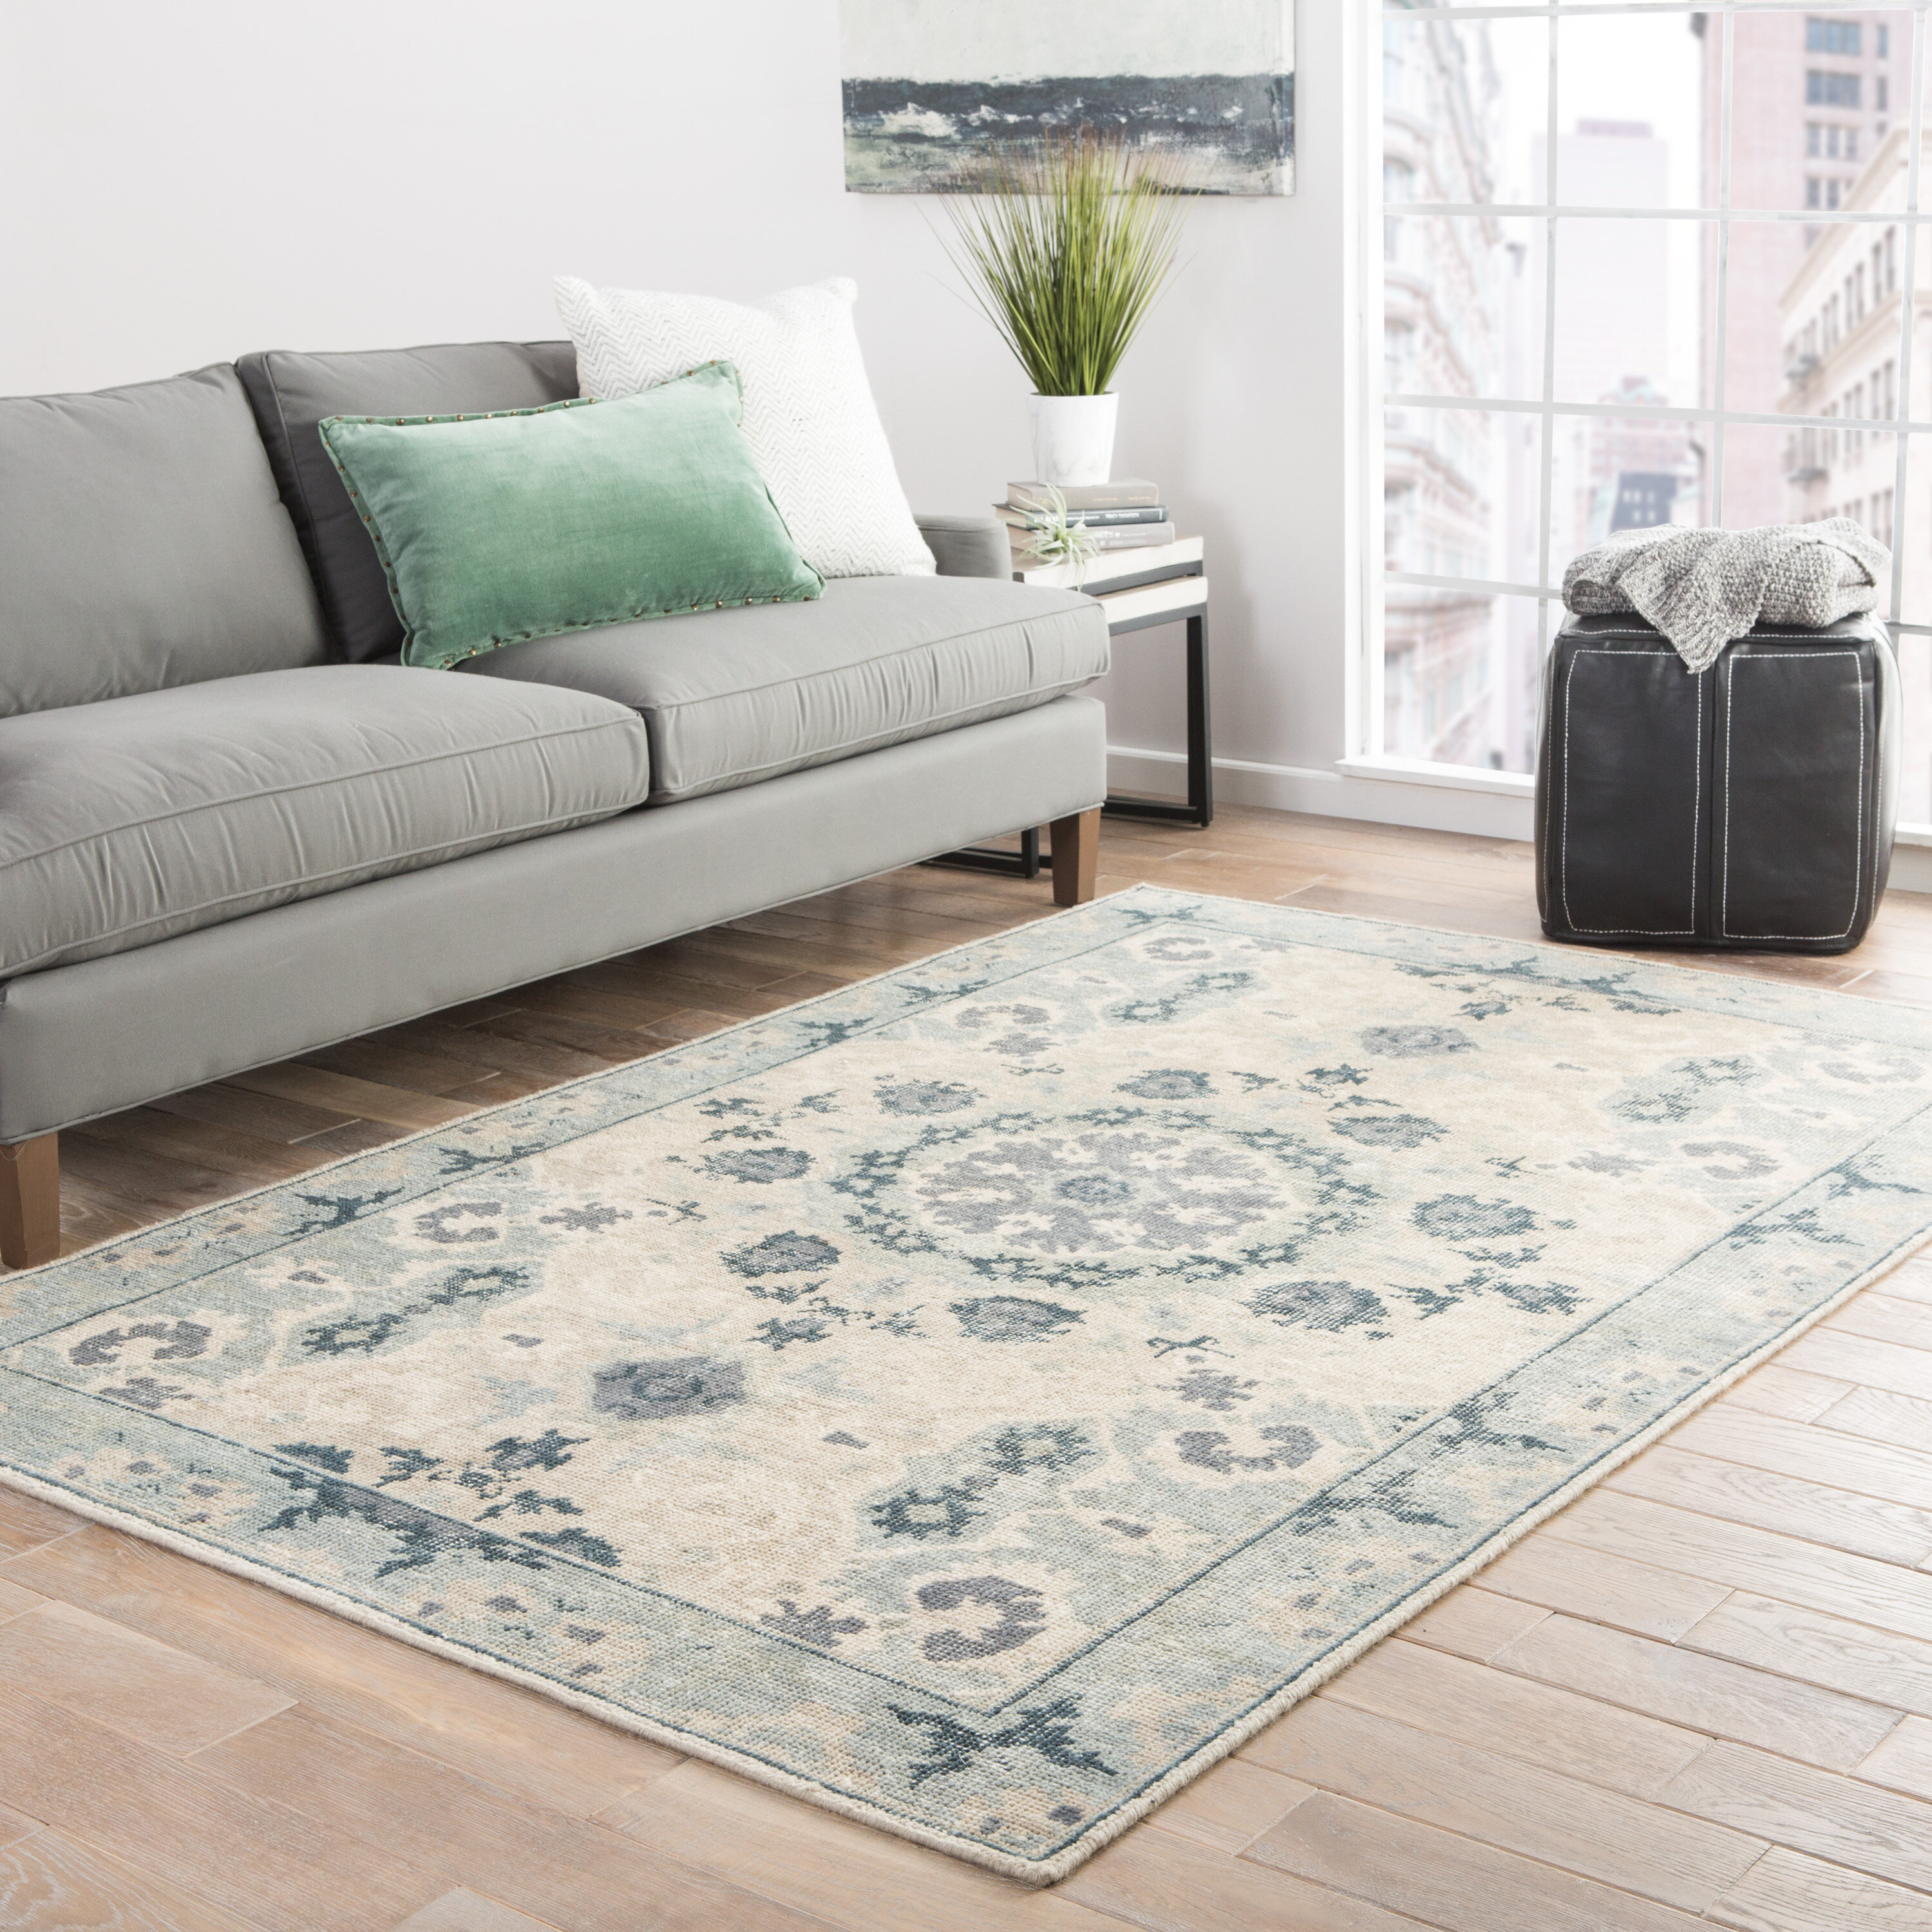 Salon Taupe Et Turquoise kamren oriental hand-knotted wool taupe/gray/blue area rug